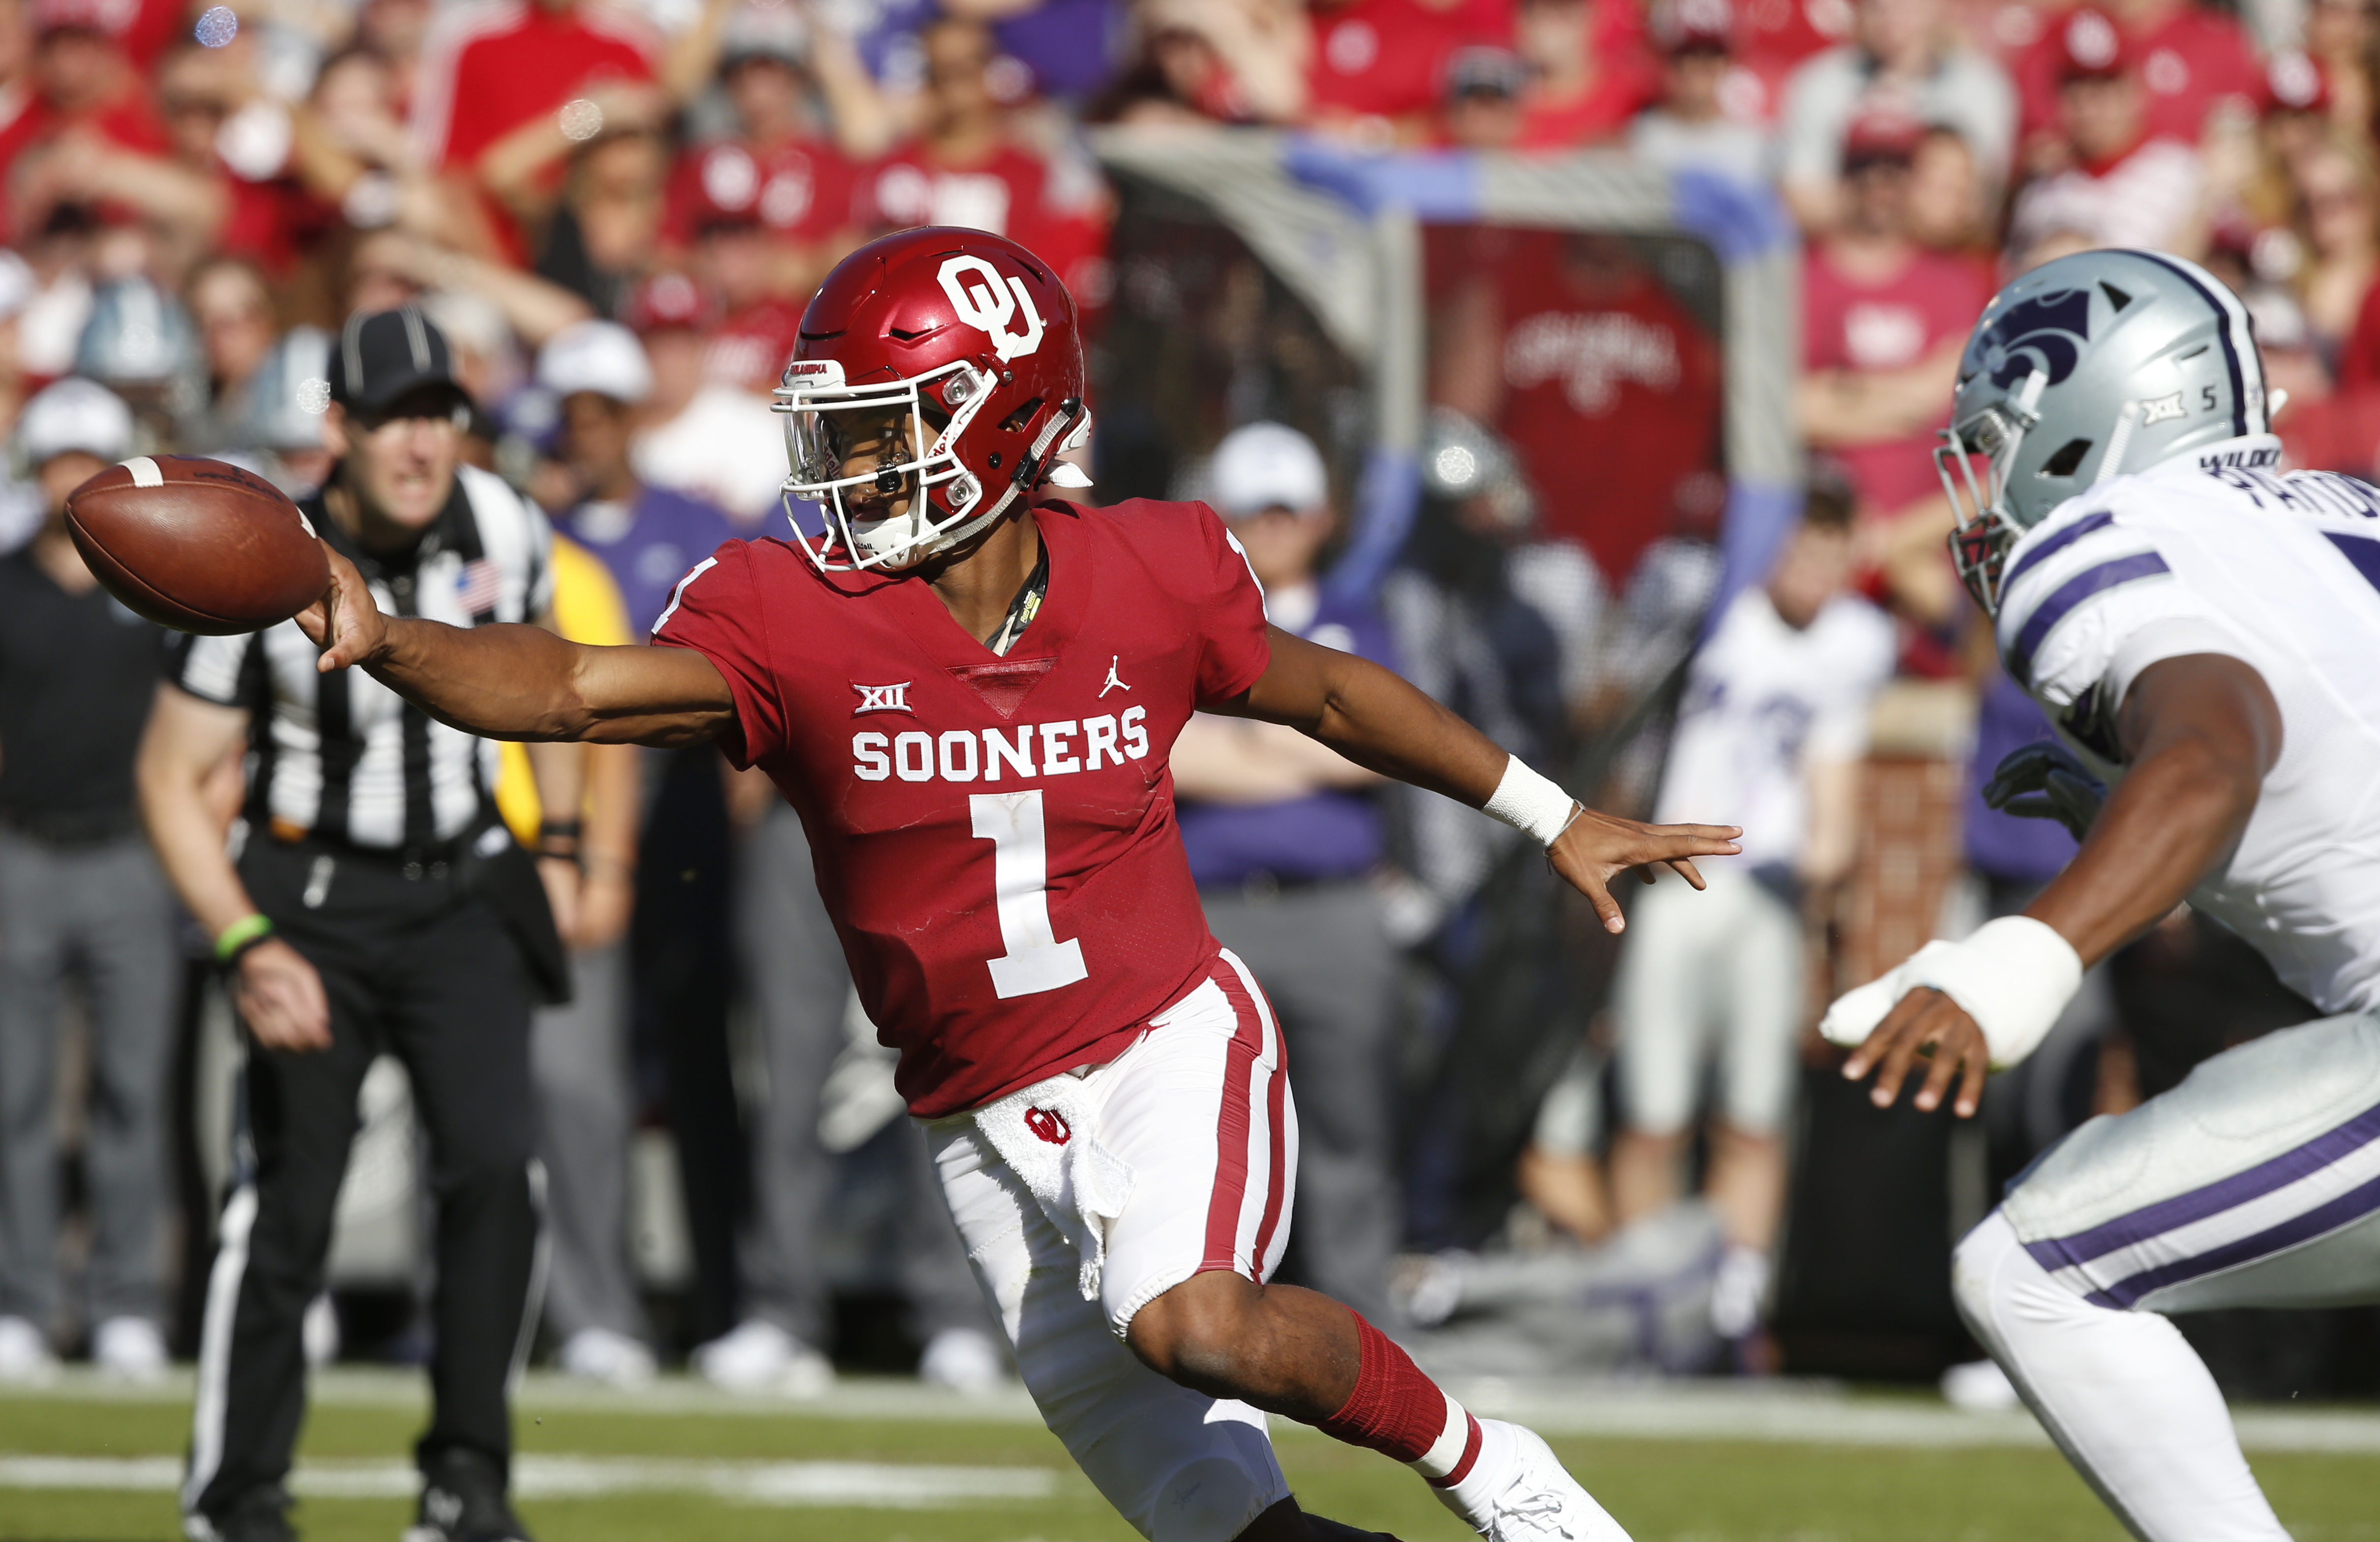 f36b2f966ffe Can Oklahoma quarterback Kyler Murray and the Sooner offense score enough  to offset a potentially bad day for the OU defense  (AP Photo Sue Ogrocki)